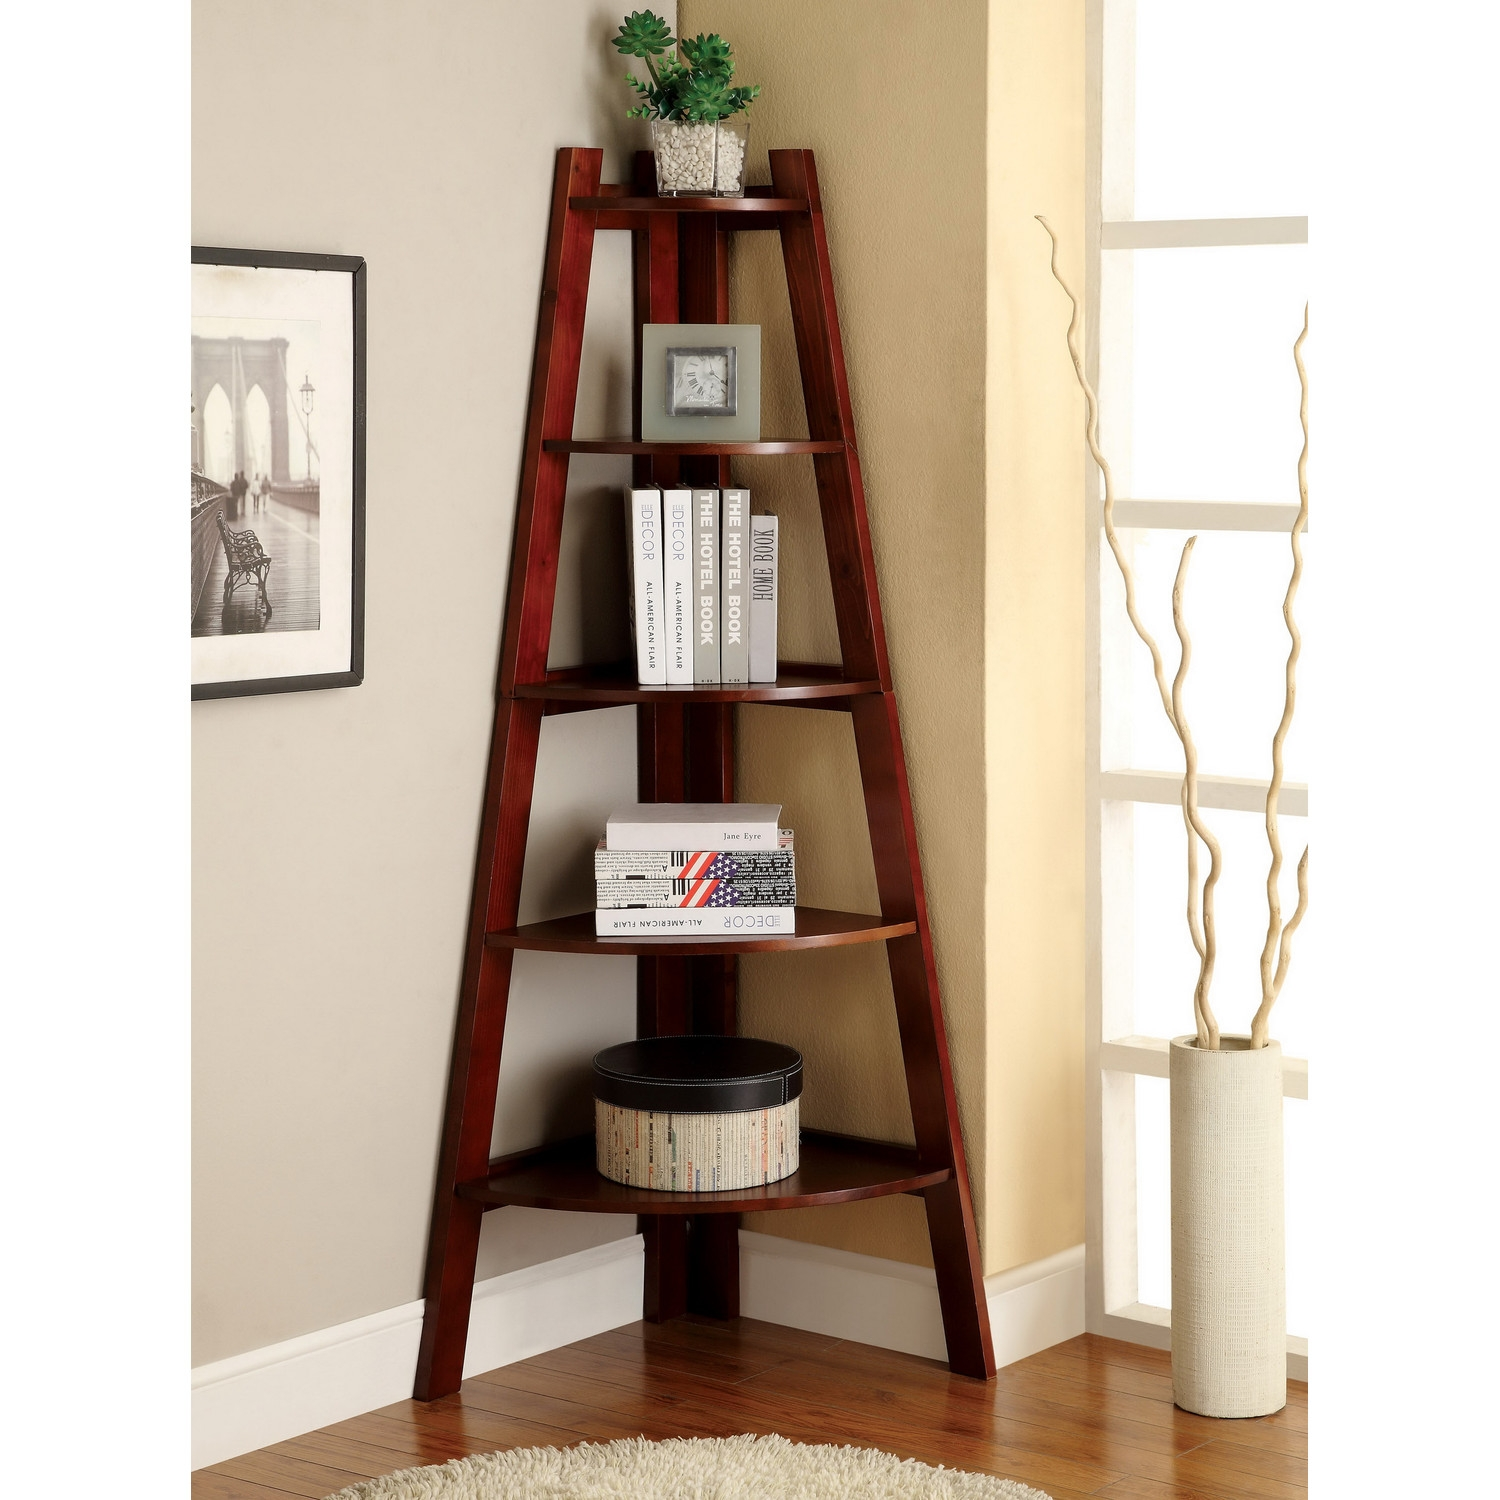 Effectively Corner Bookcase In Fabulous Style Doherty House Inside Corner Bookcase (#11 of 15)